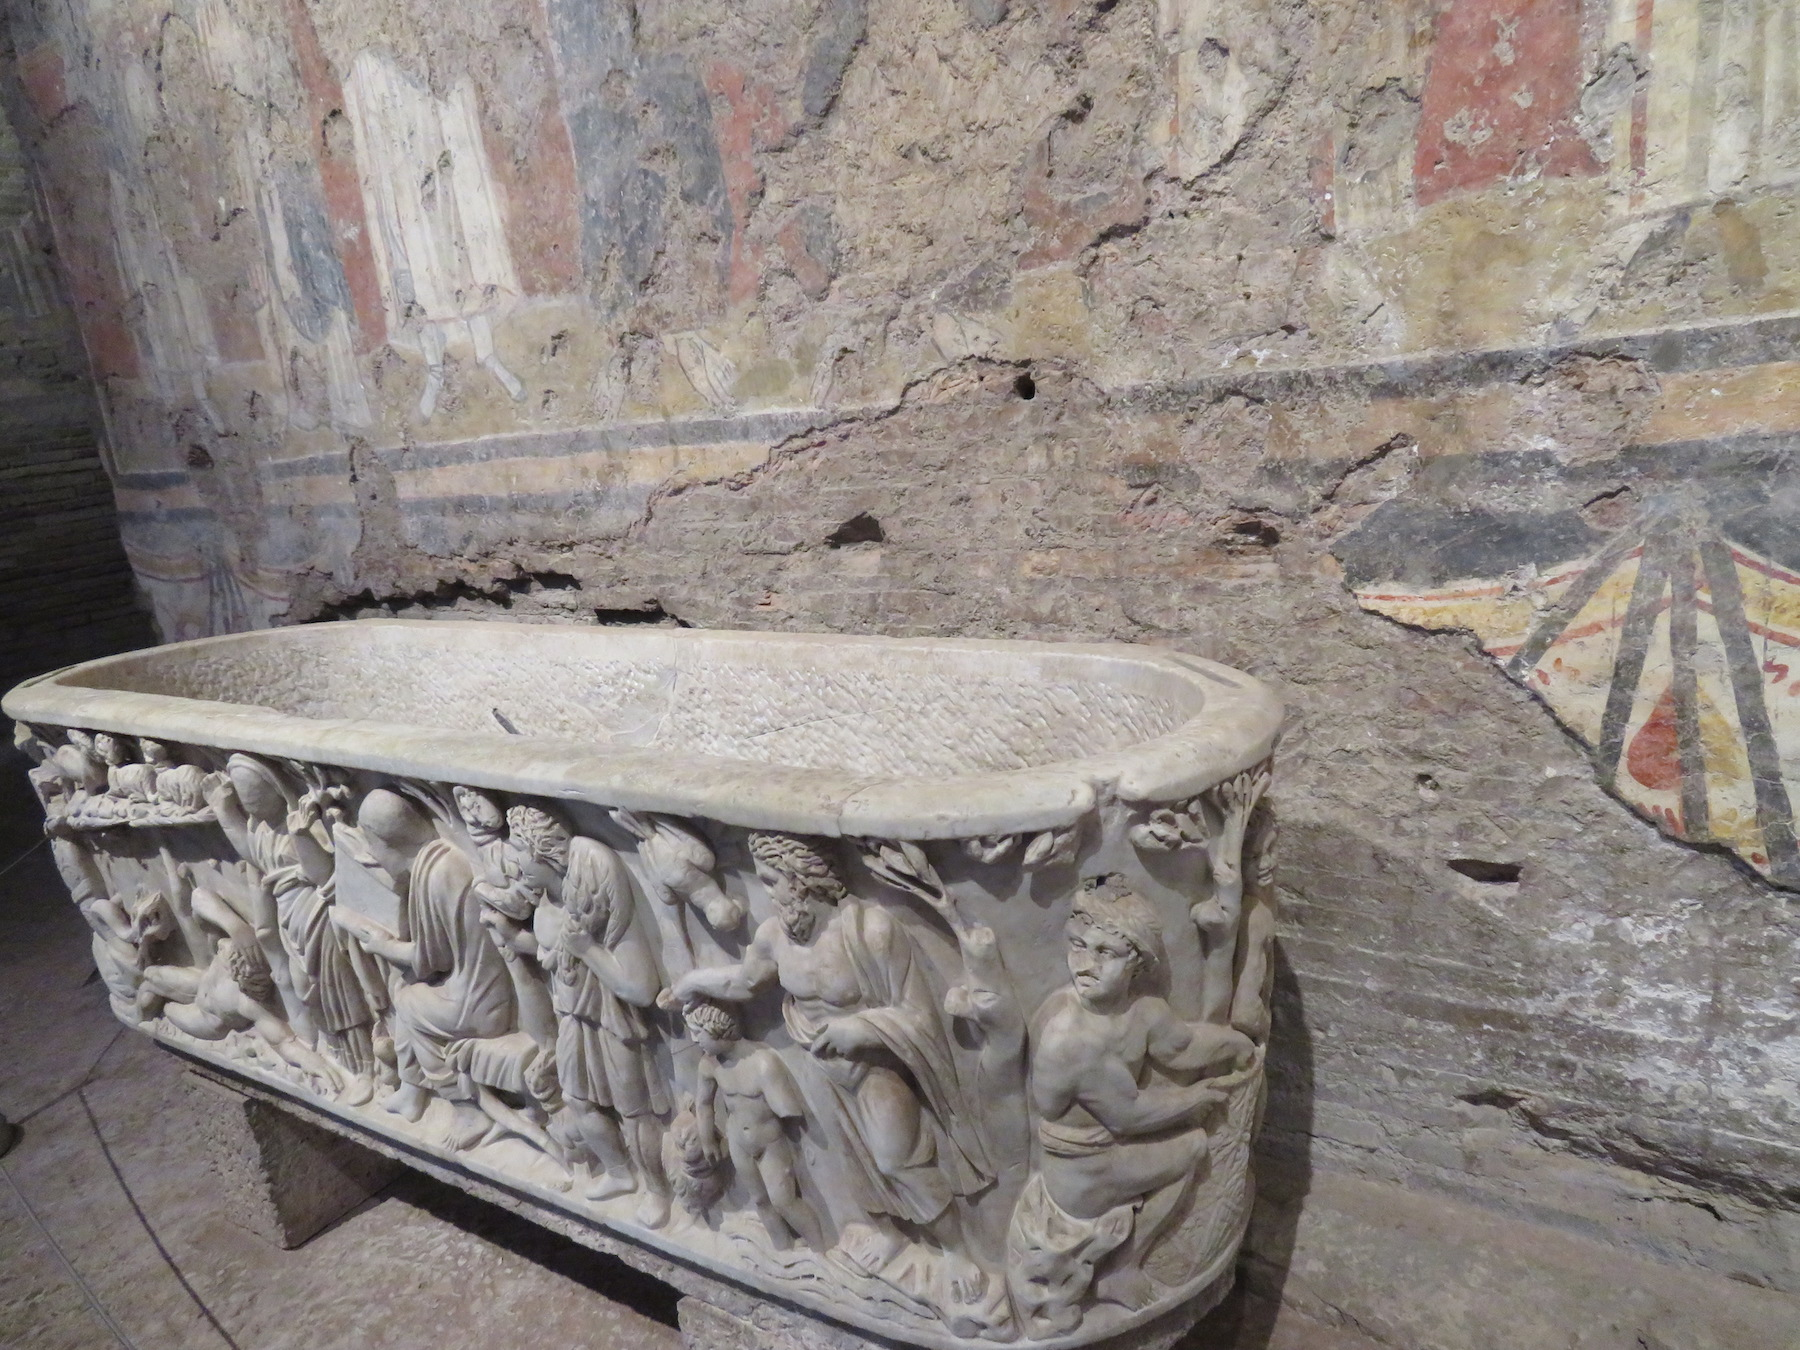 Sarcophagus at Santa Maria Antiqua Church